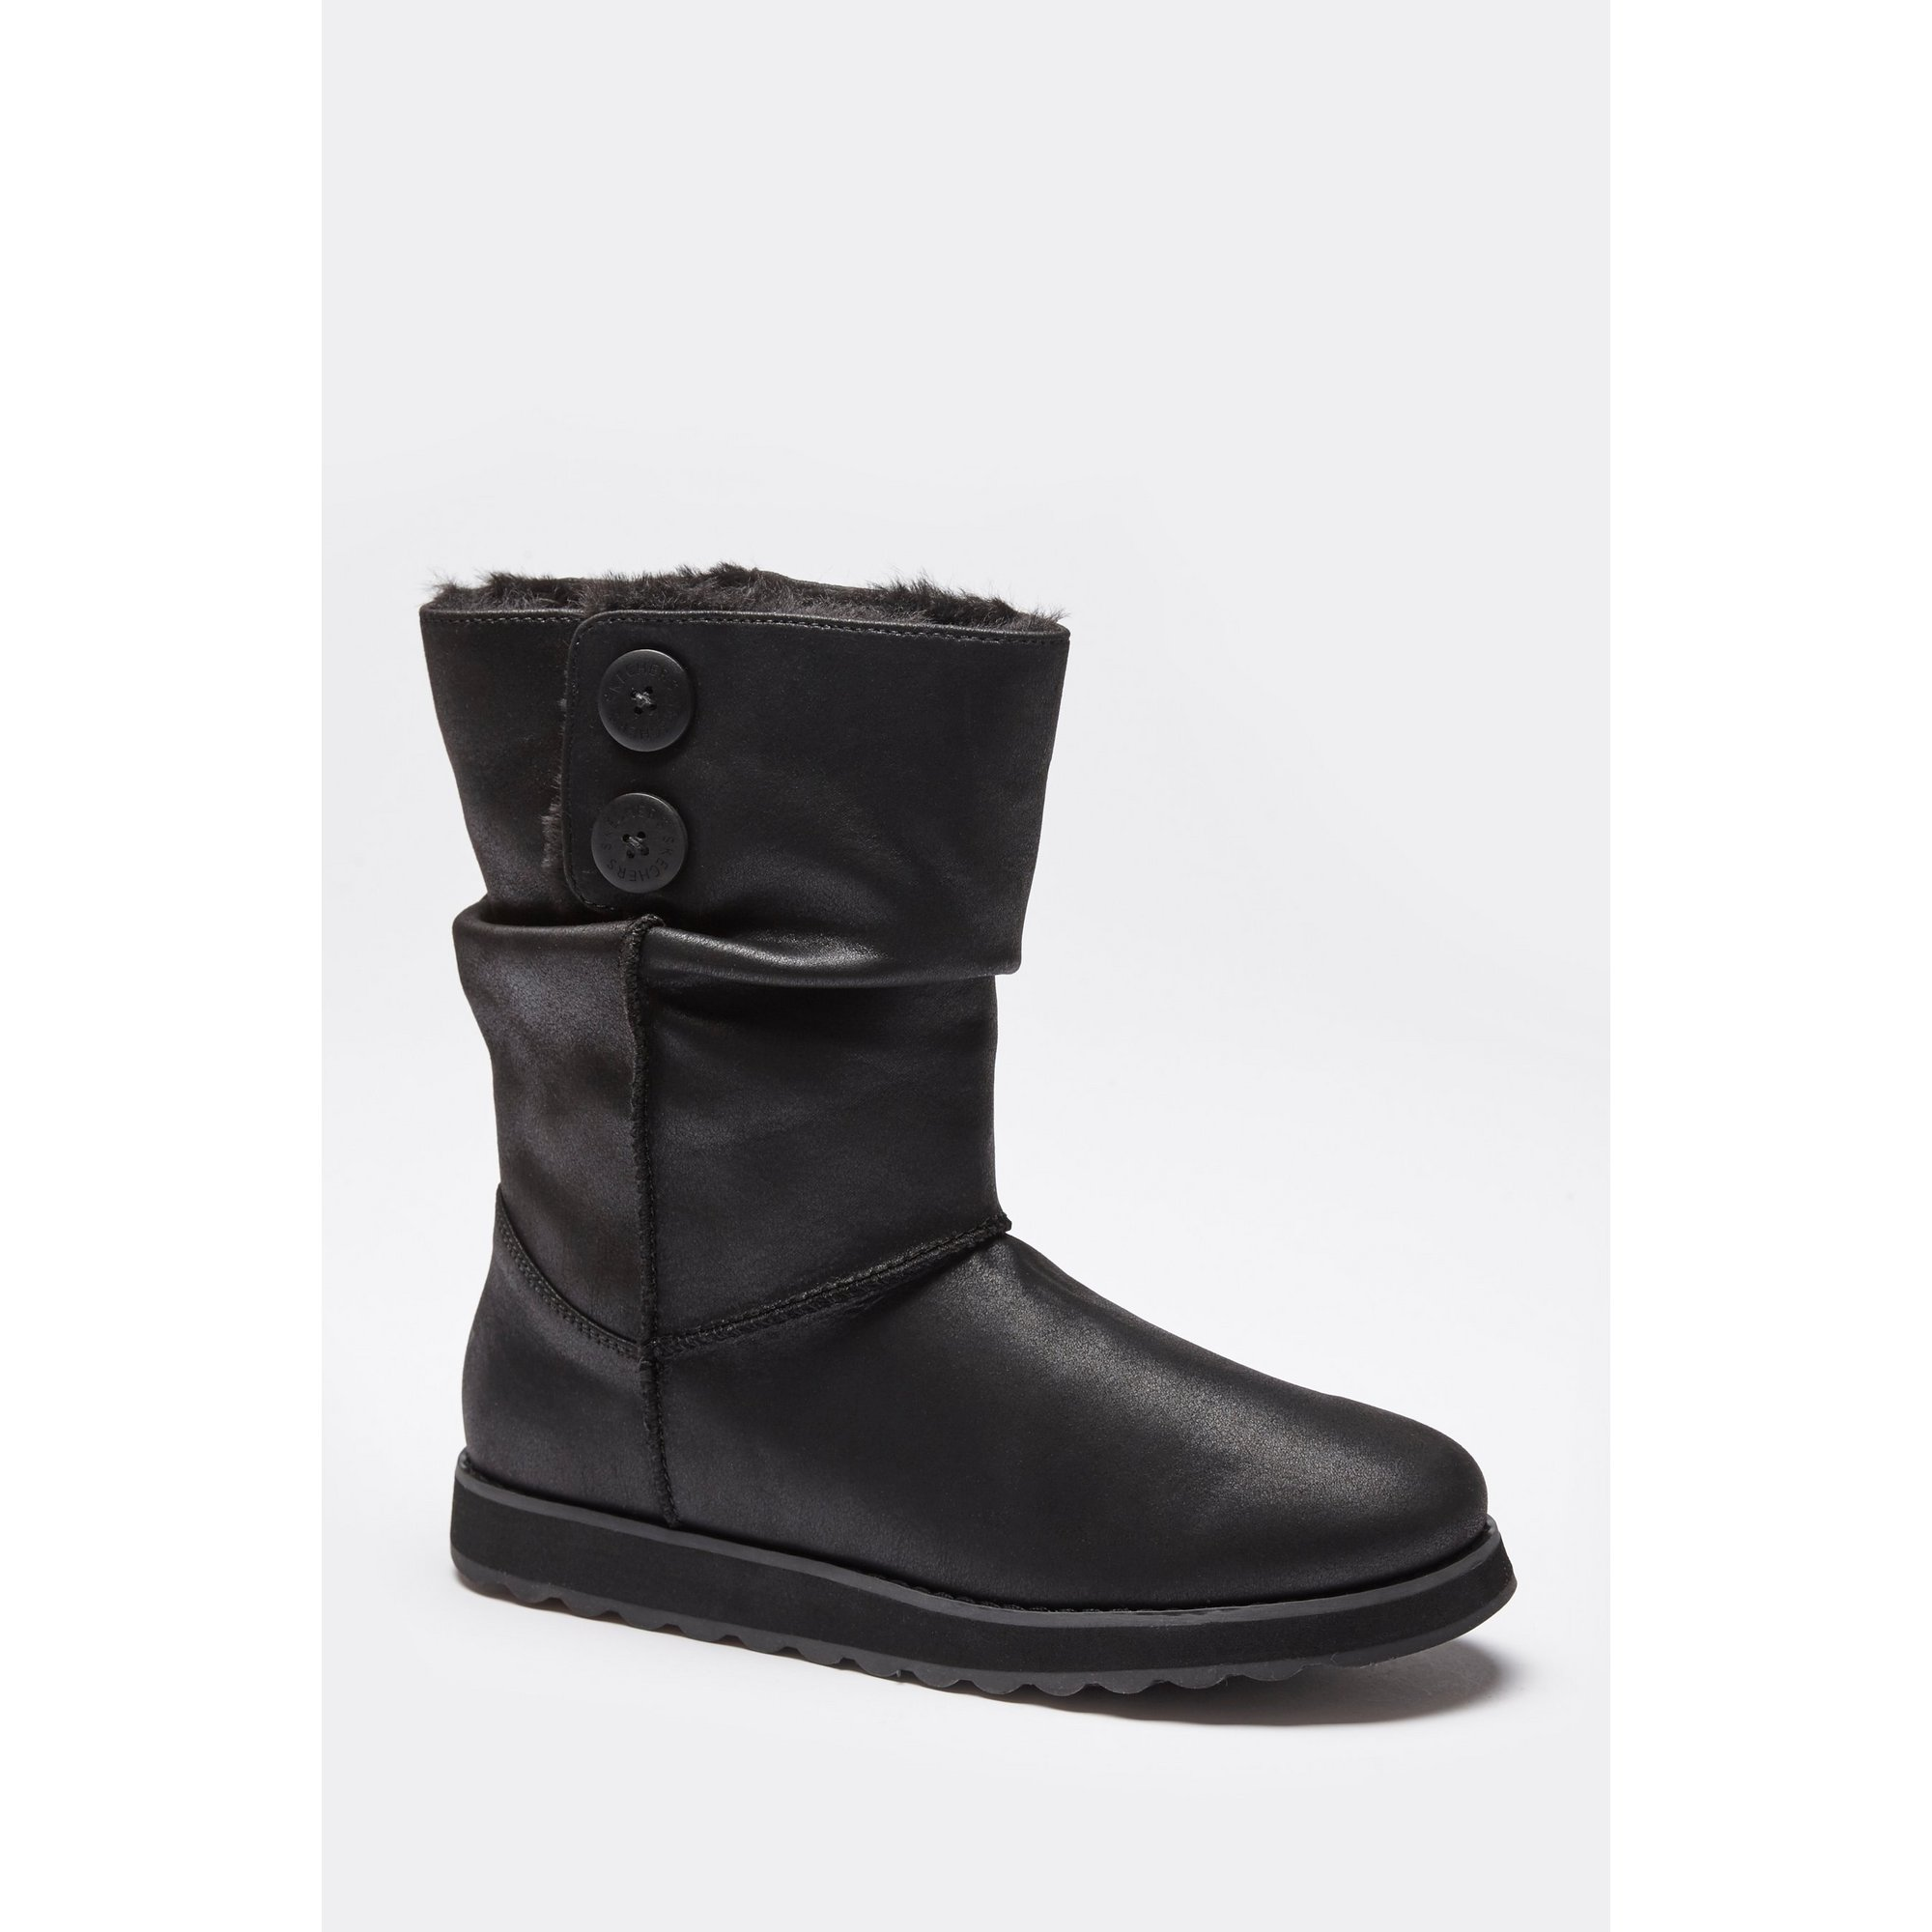 Skechers 2.0 Upland Mid Boots